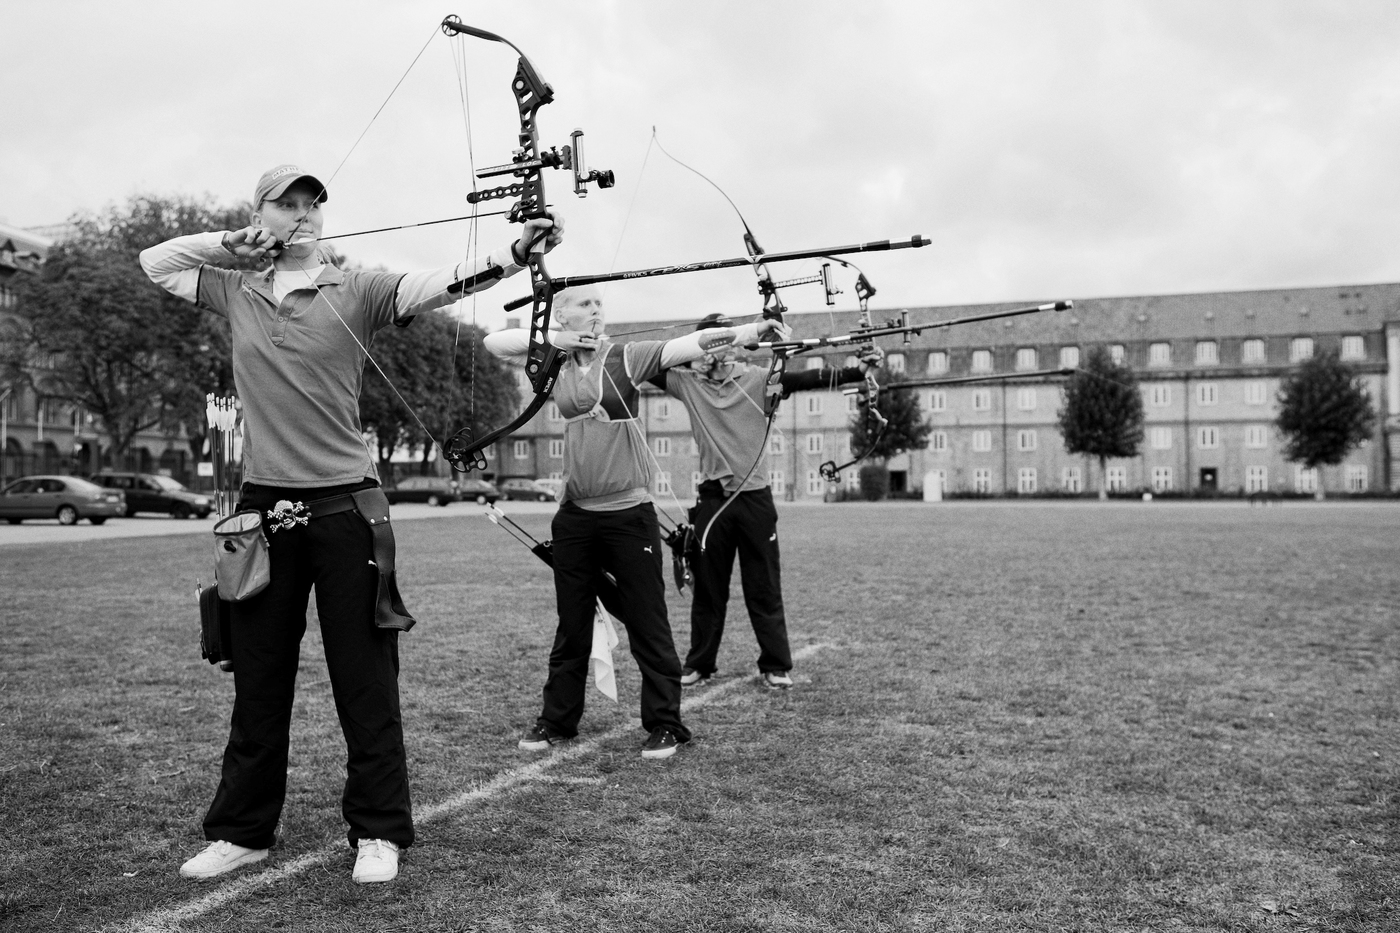 Longines Archery Event: Longines the Official Partner of the Archery World Cup Final 1